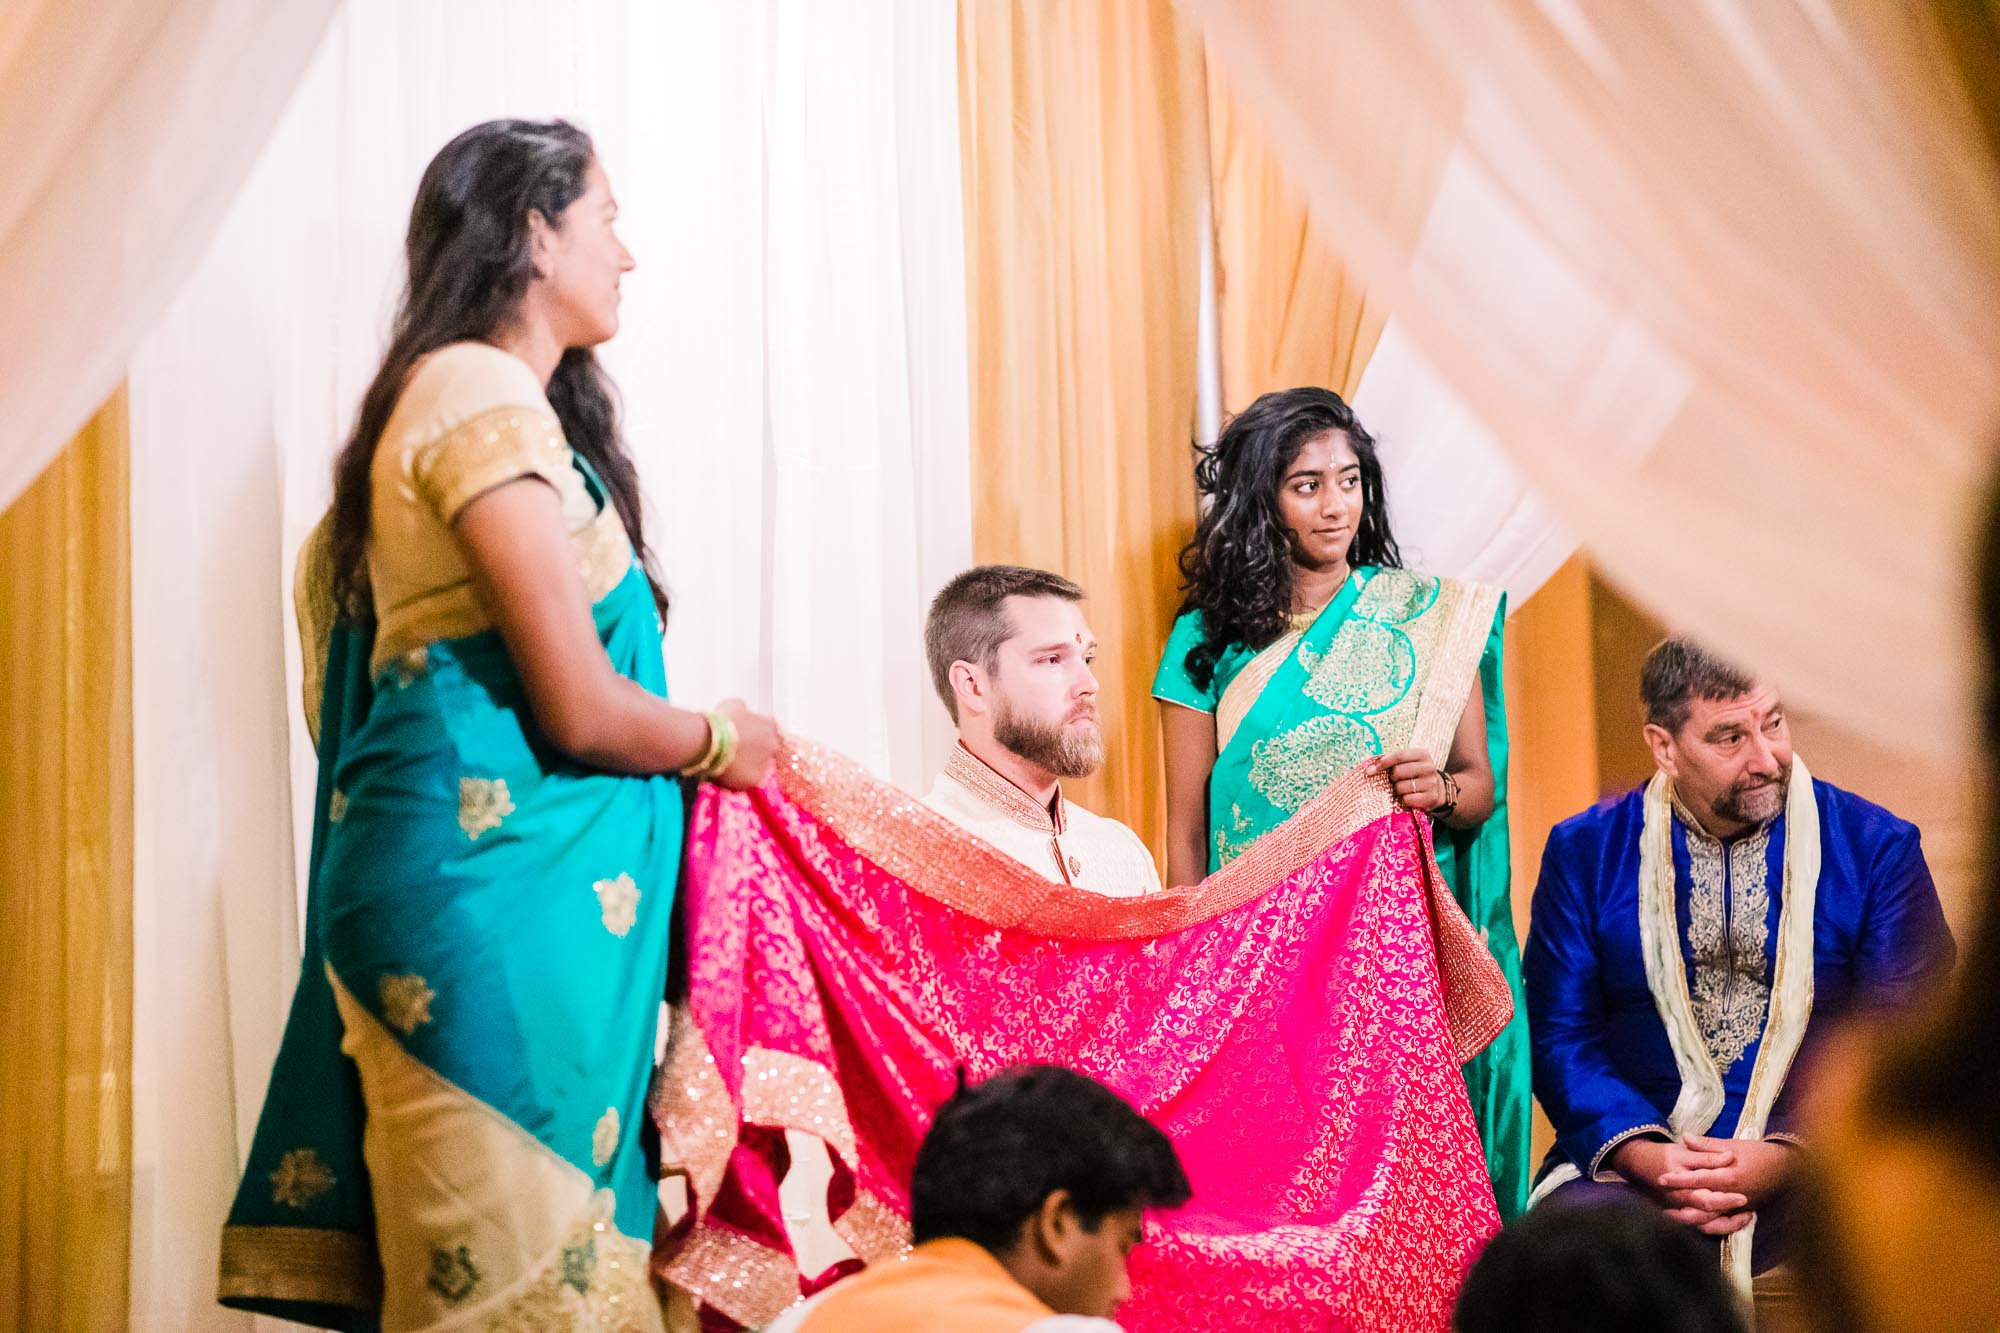 Scranton_Radisson_Hindu_Wedding-6473.jpg